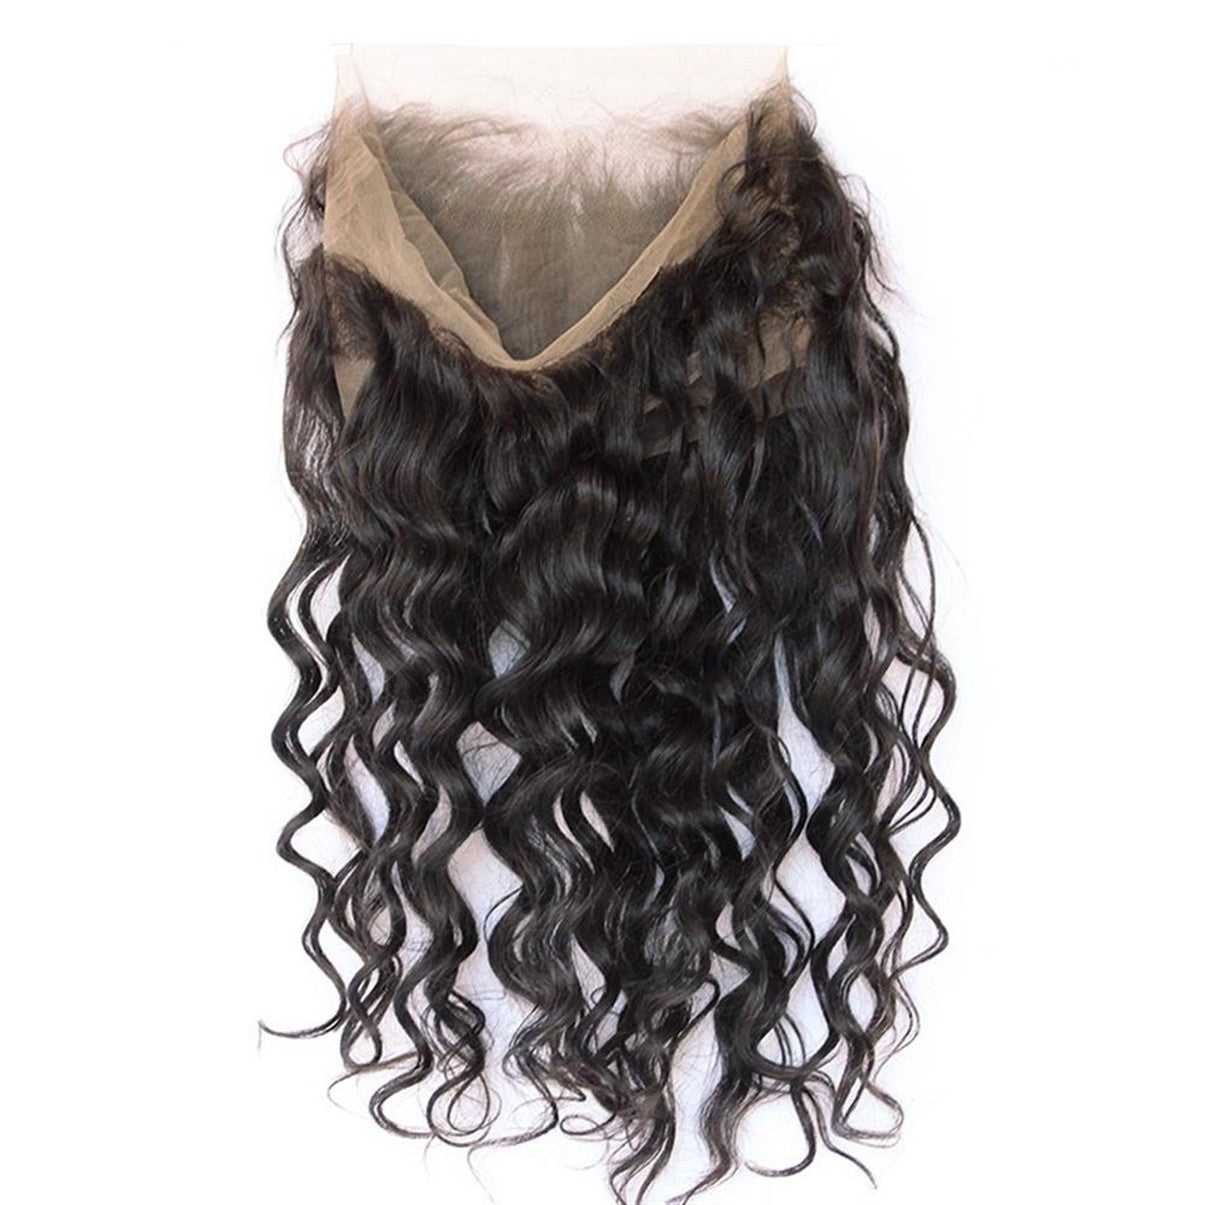 Lakihair 8A Grade Loose Wave Virgin Human Hair 2 Bundles With 360 Lace Frontal